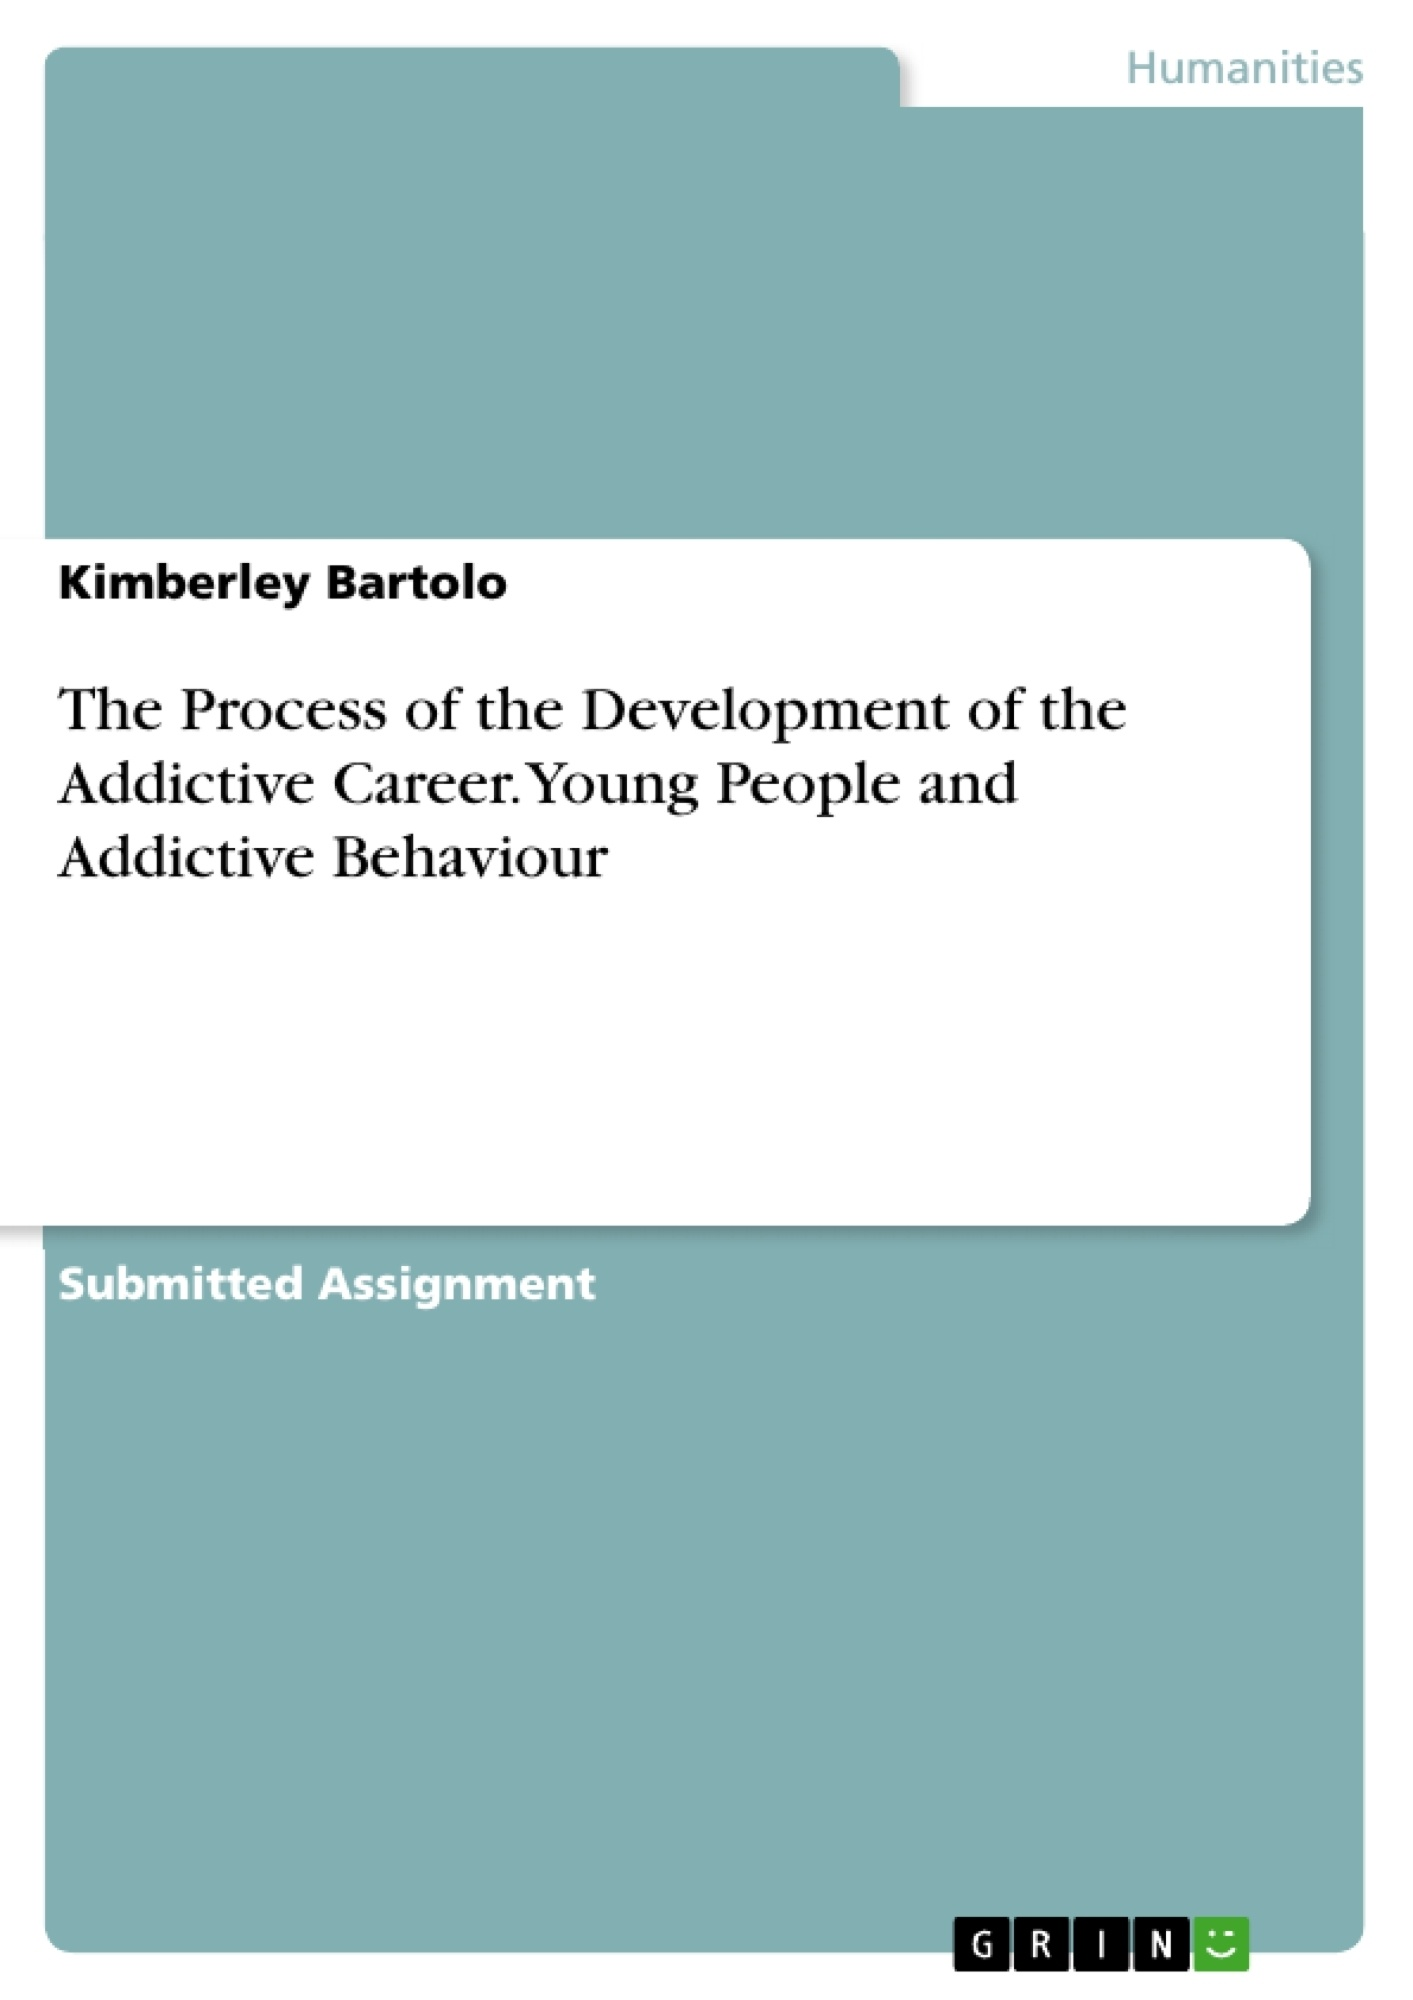 Title: The Process of the Development of the Addictive Career. Young People and Addictive Behaviour